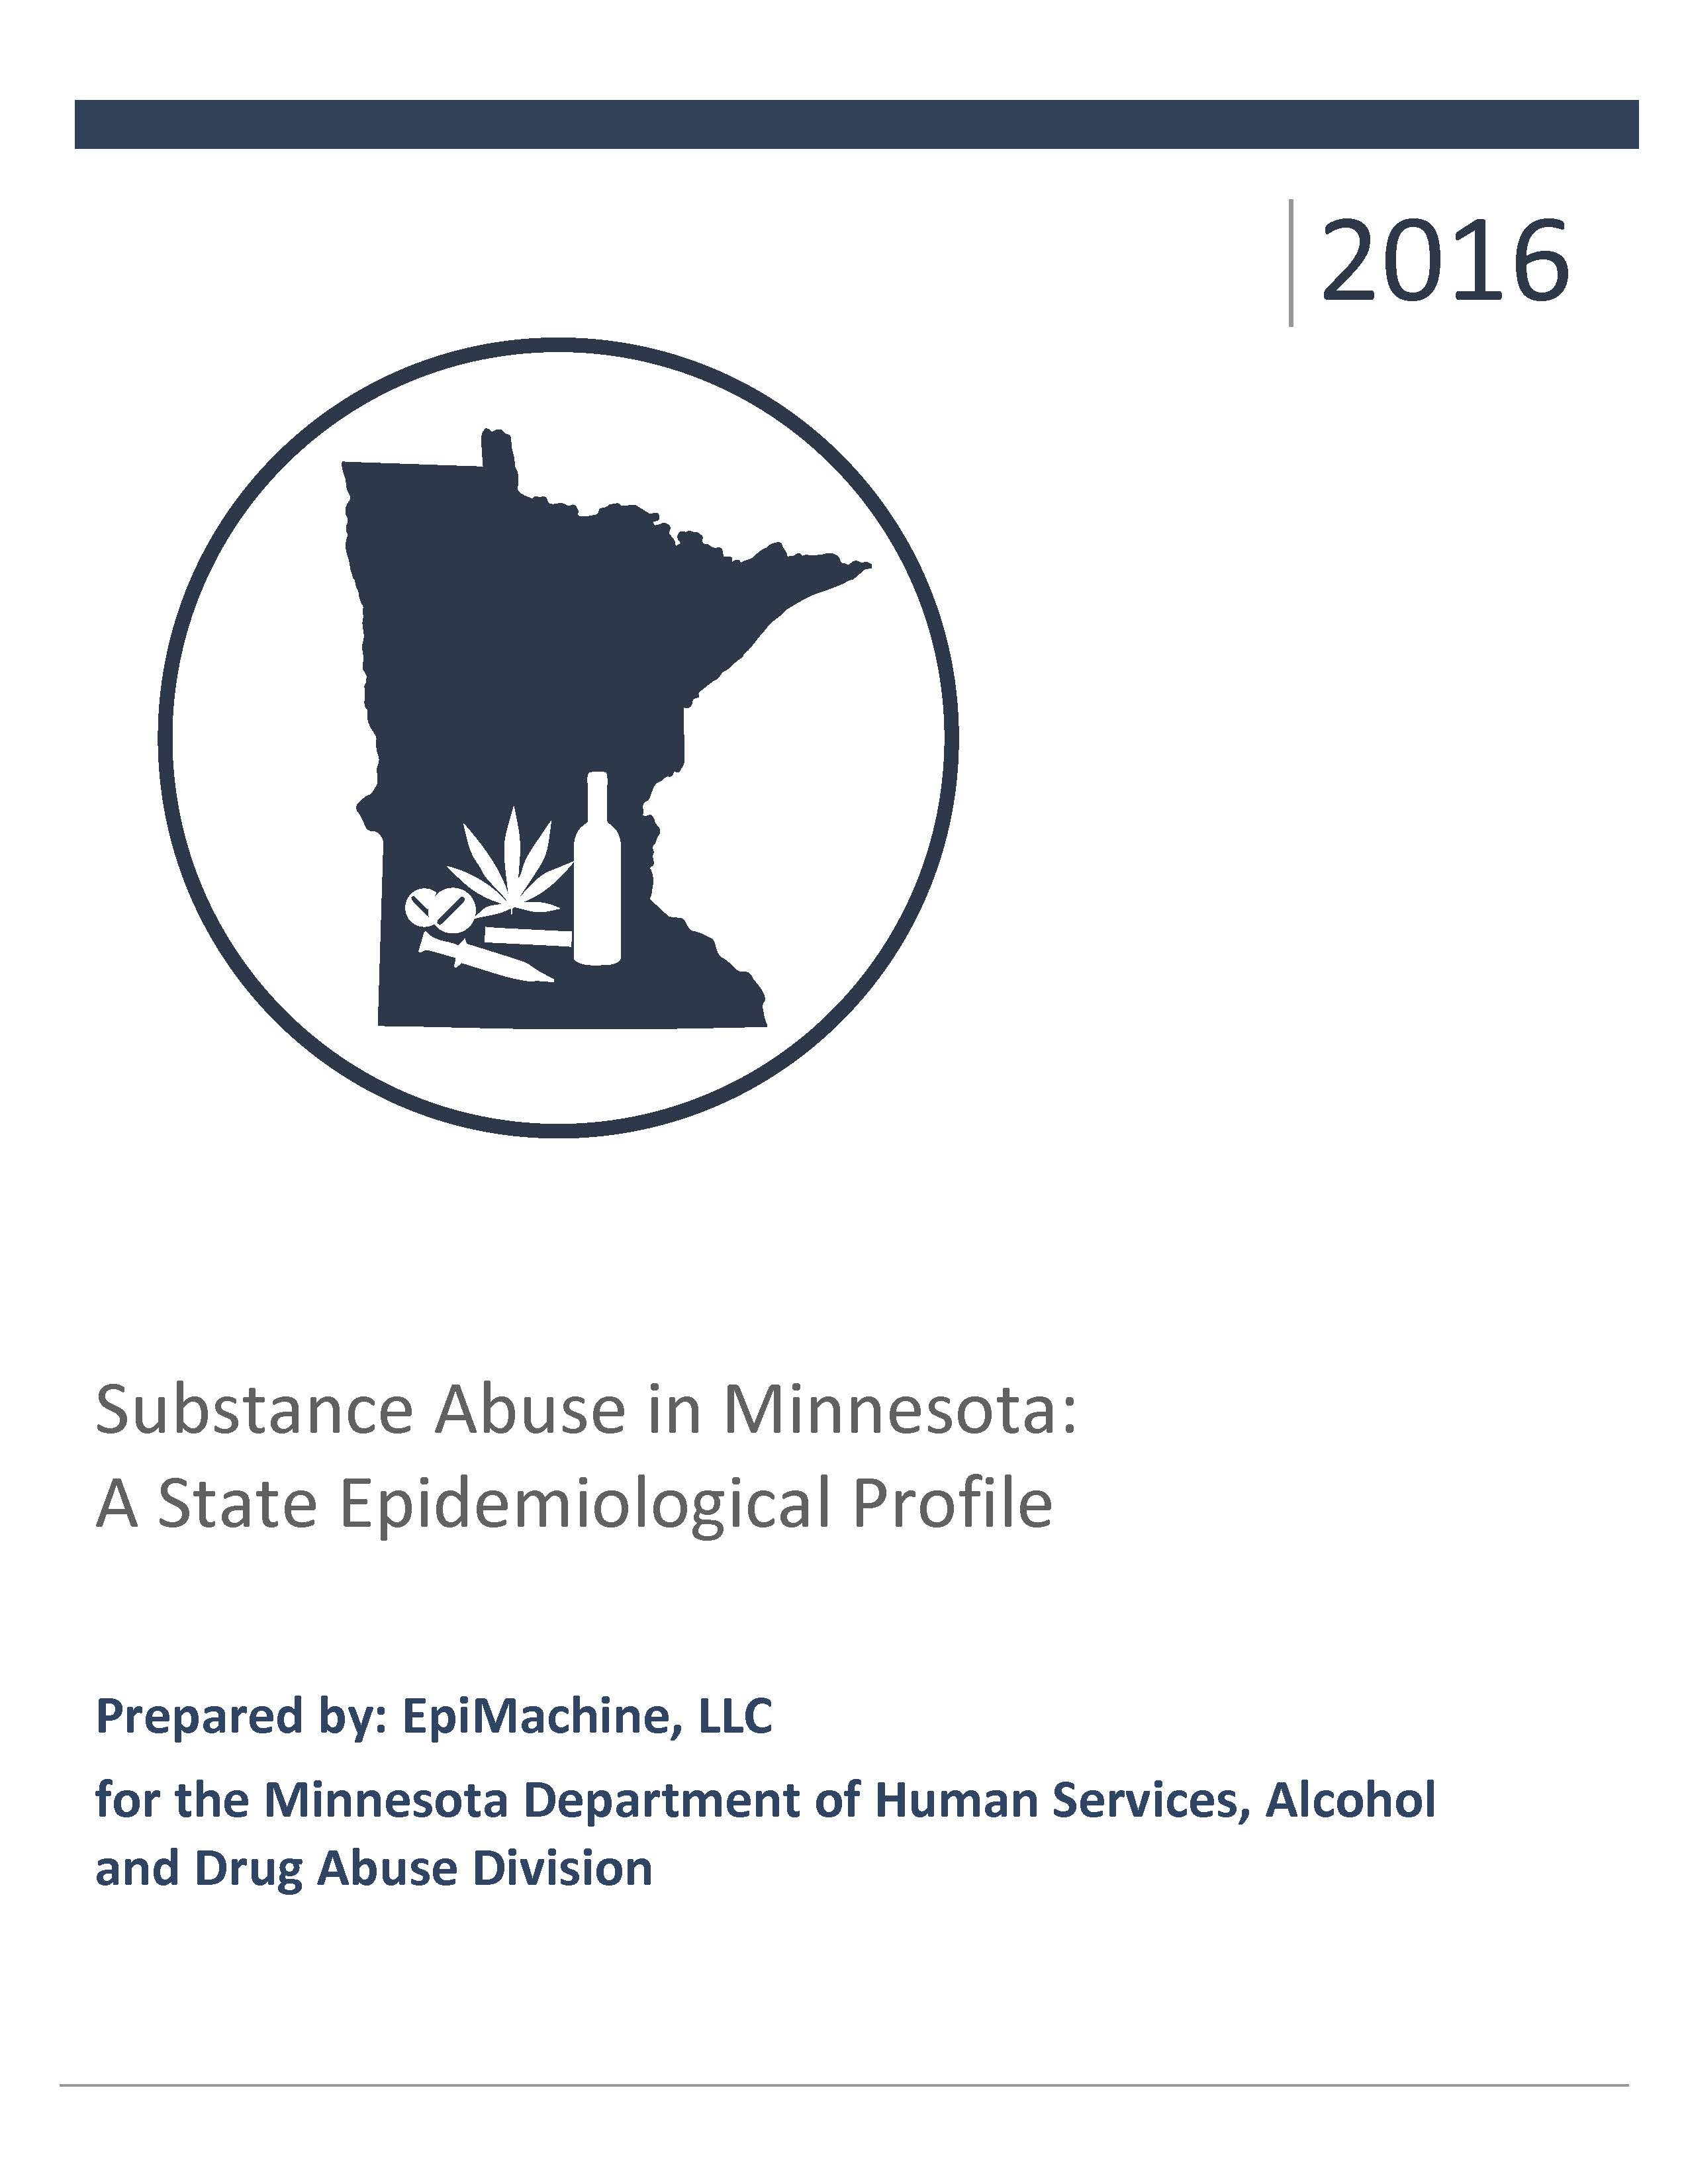 Cover of the 2016 Minnesota State Epidemiological Profile PDF